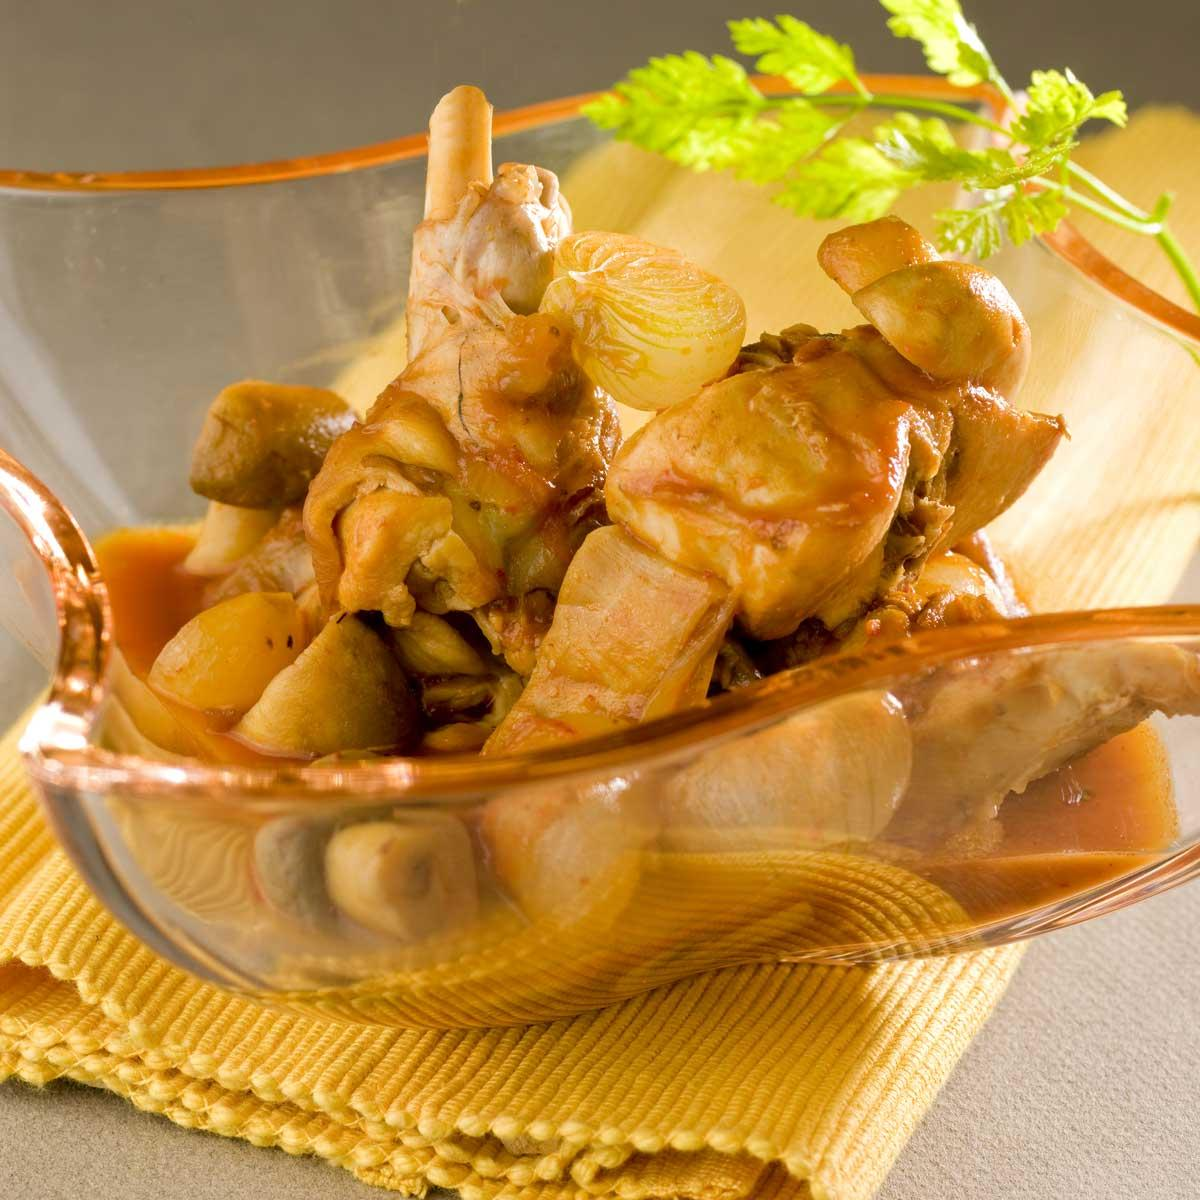 Recette lapin chasseur cuisine madame figaro - Lapin cuisine marmiton ...